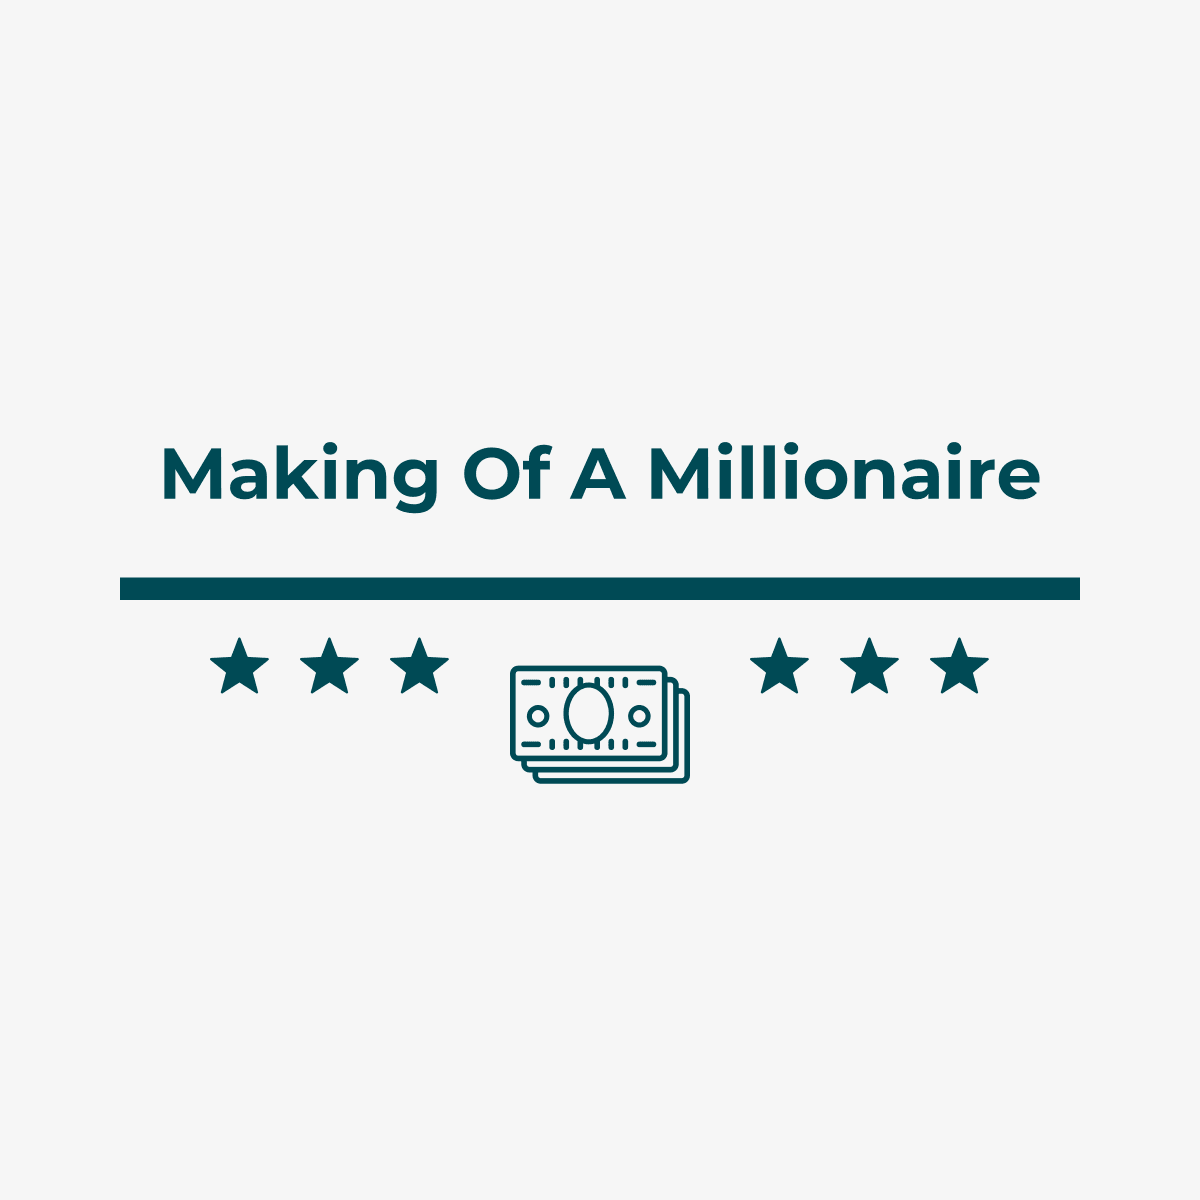 Making of a Millionaire Medium Publication